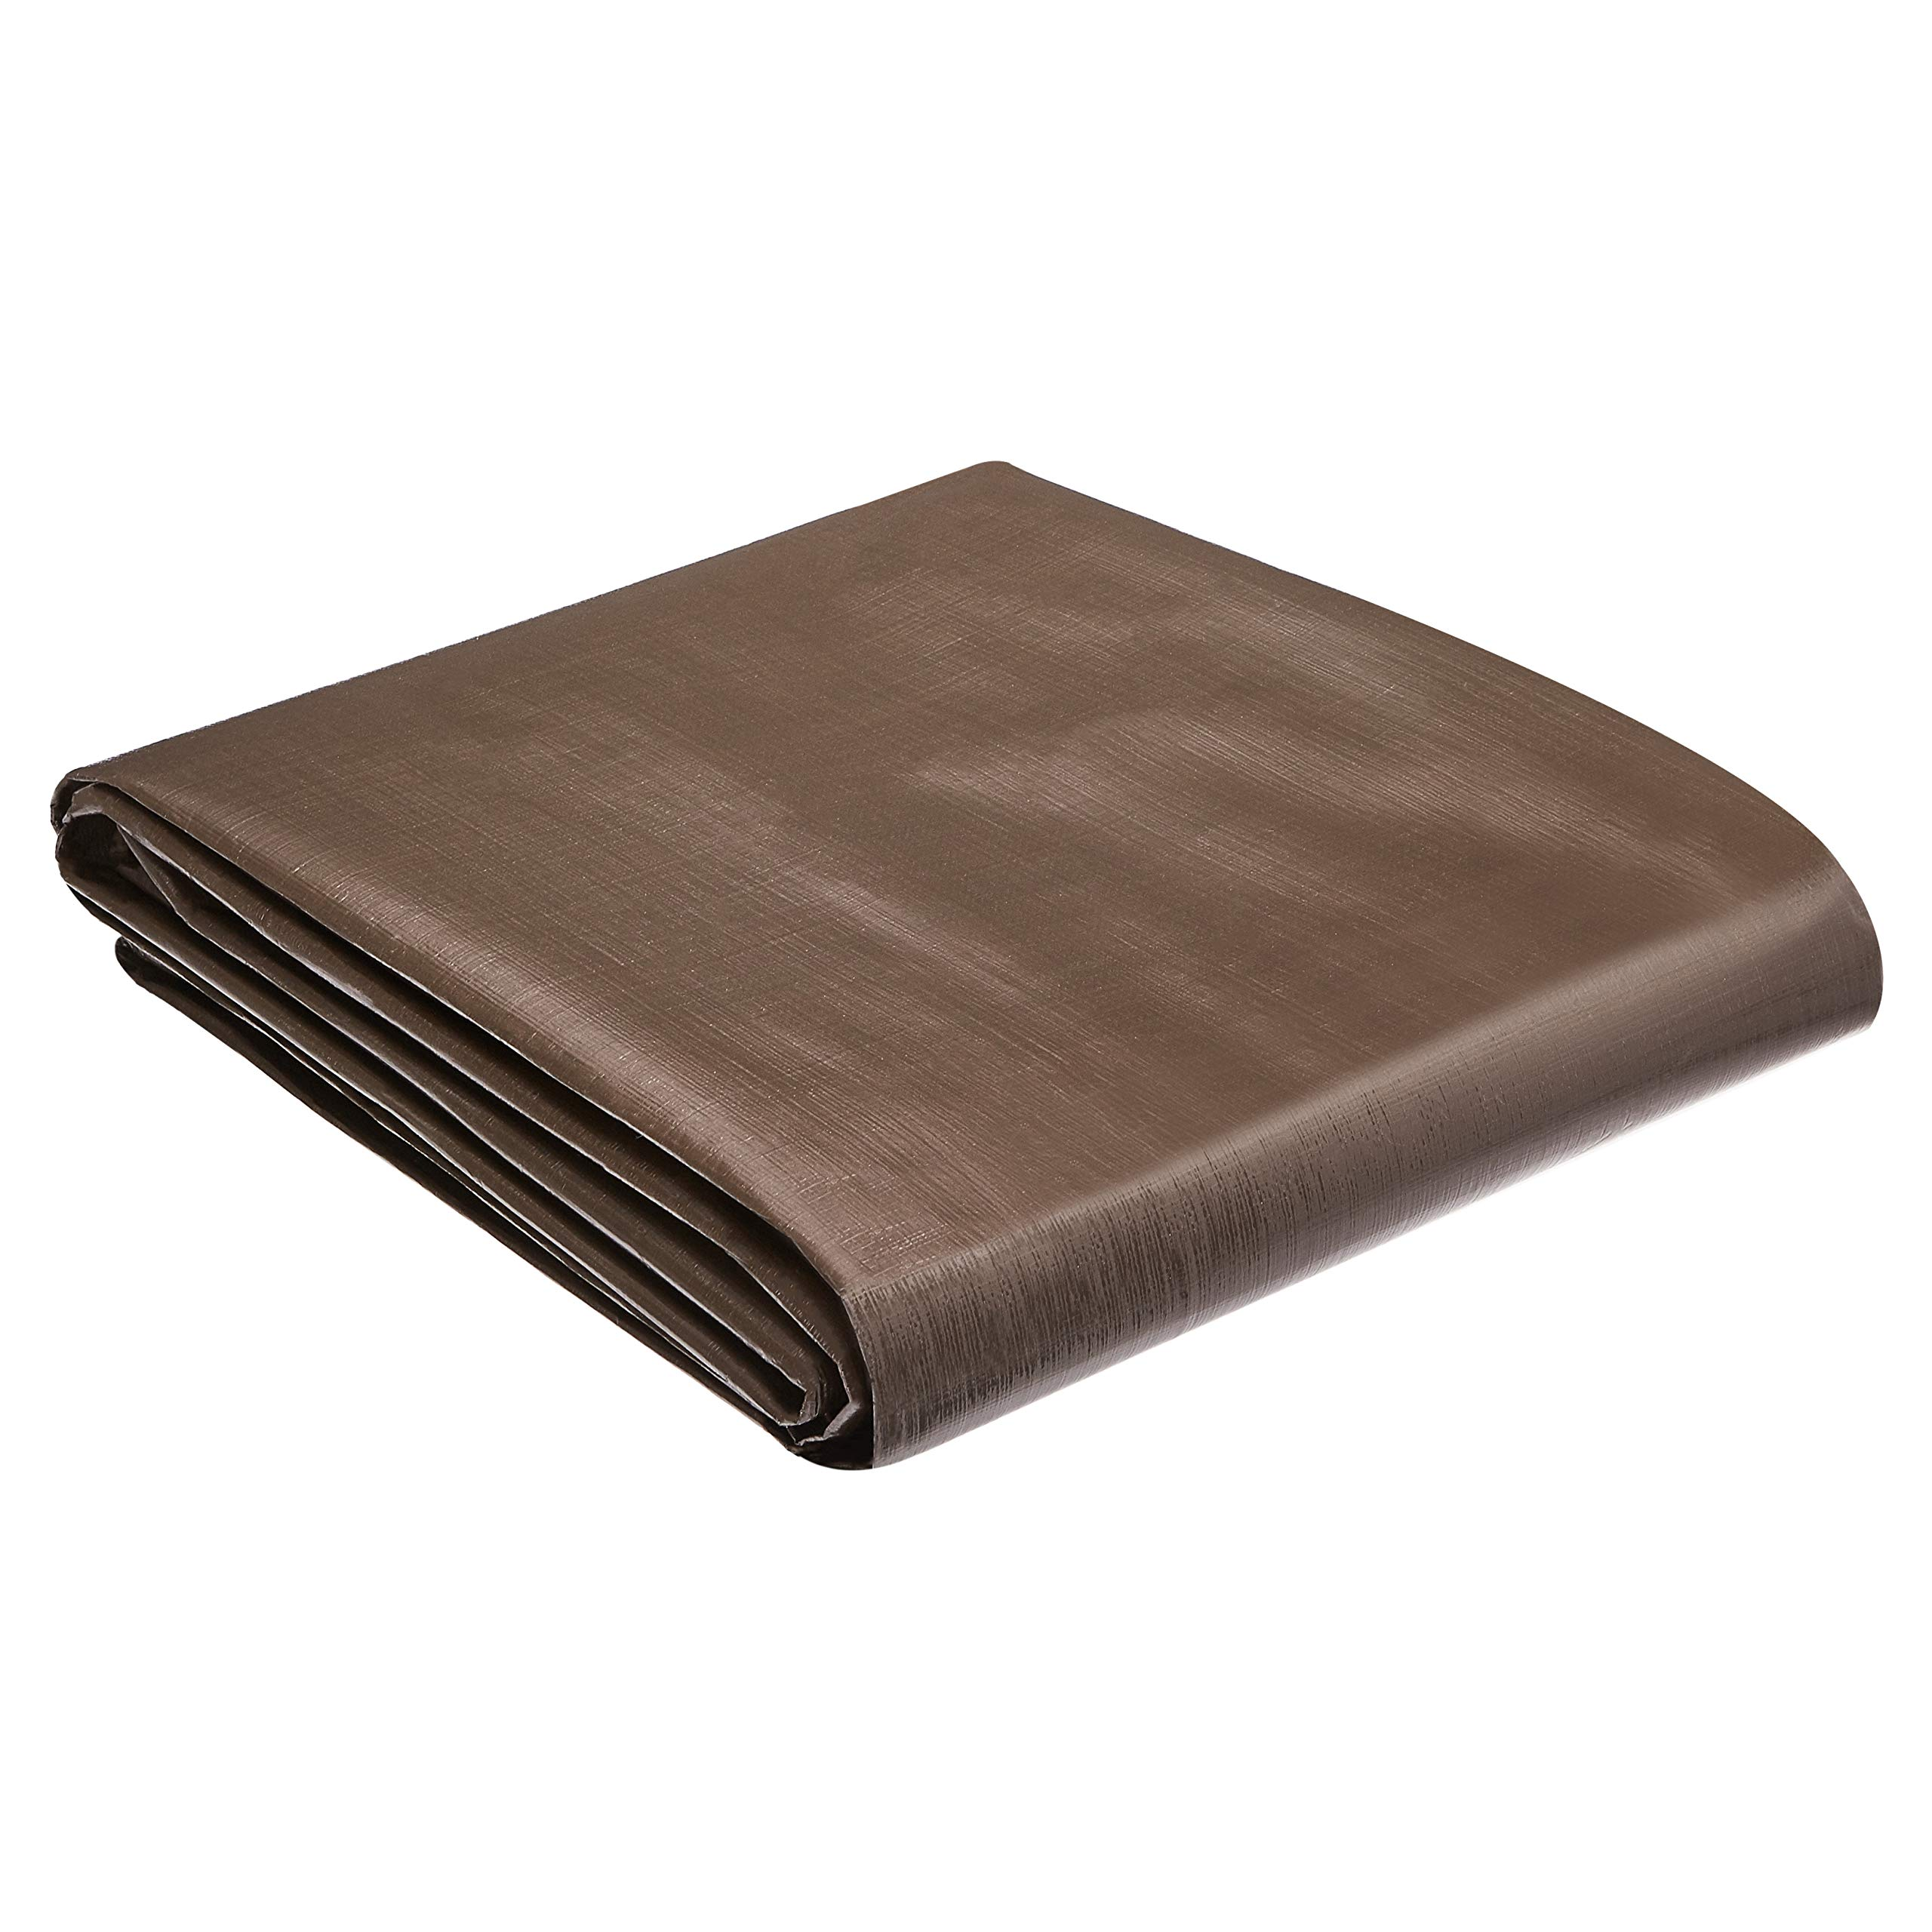 AmazonCommercial Multi Purpose Waterproof Poly Tarp Cover, 10 X 20 FT, 10MIL Thick, Brown/Silver, 2-Pack